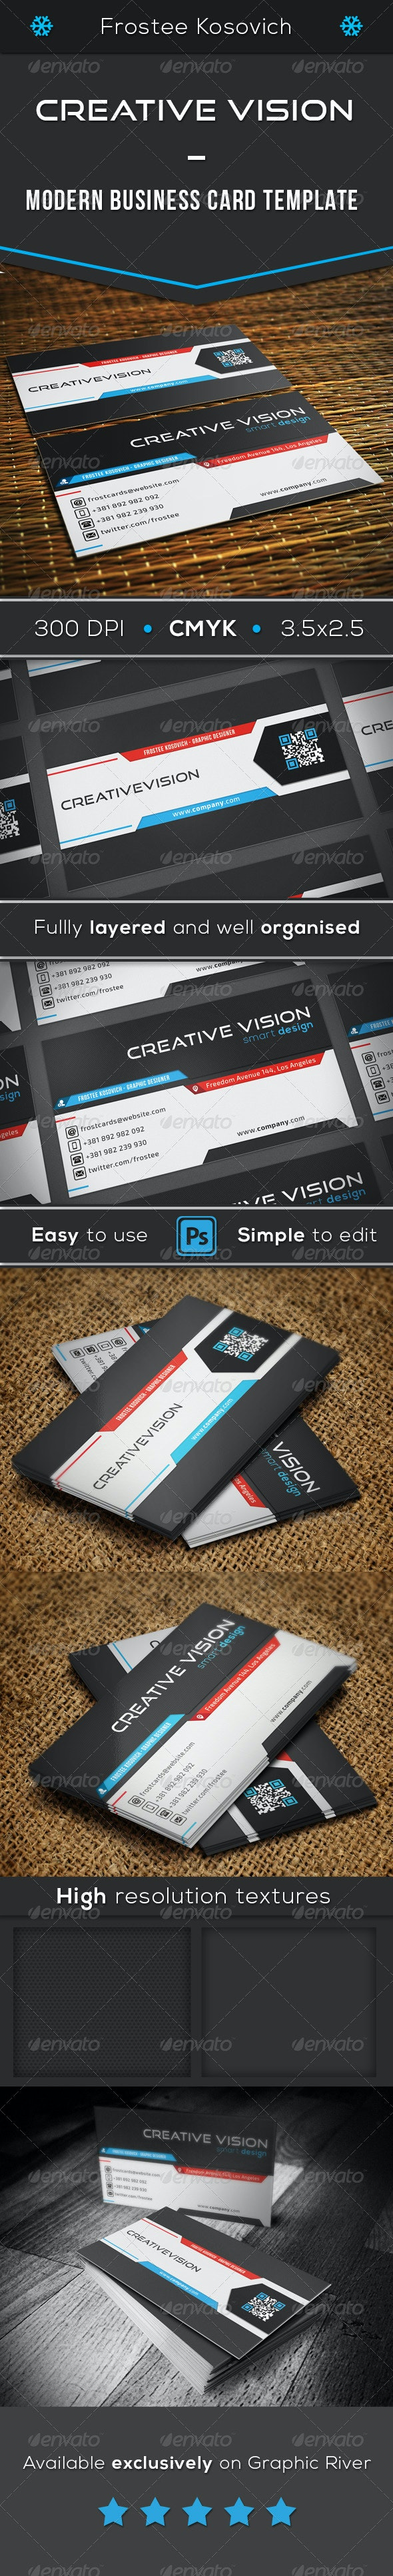 Creative Vision Modern Business Card Template - Creative Business Cards